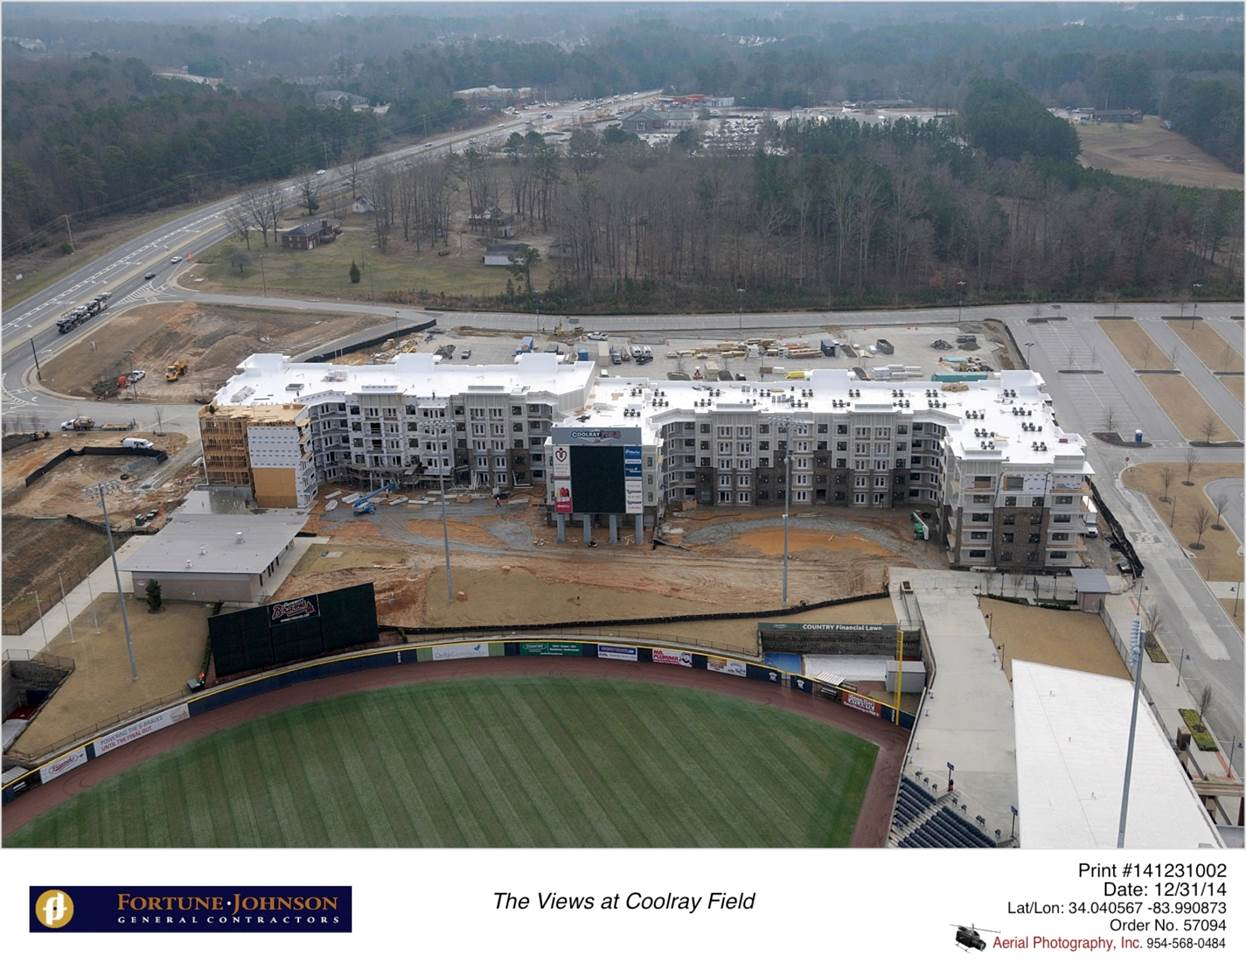 gwinnett forum brack luxury apartment complex rising